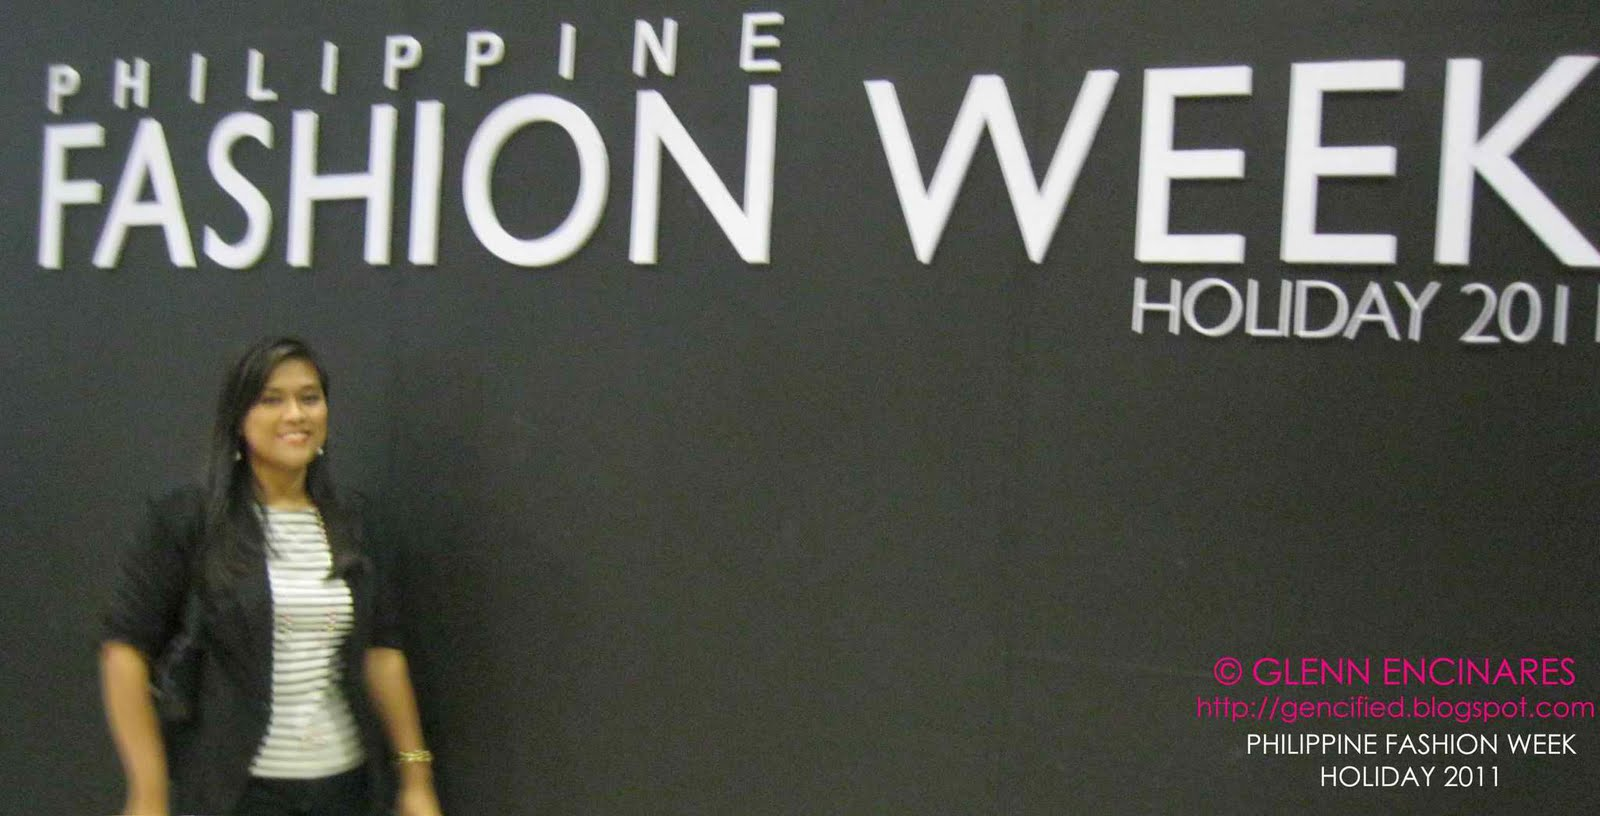 GENCIFIED: Philippine Fashion Week Holiday 2011: My Experience